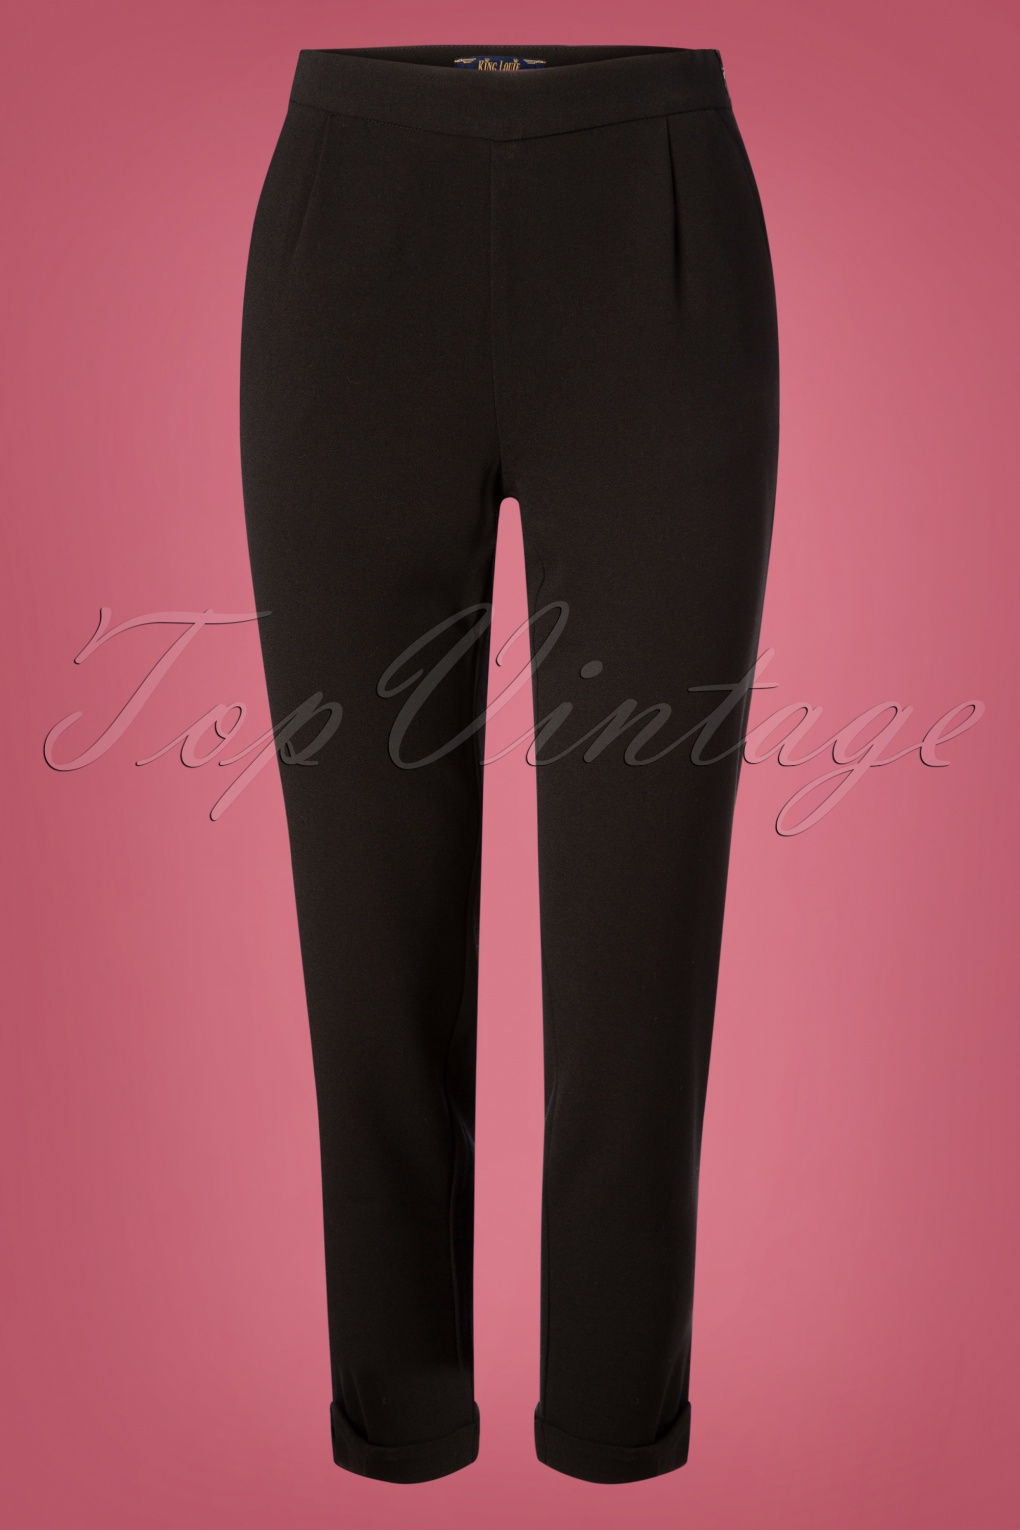 1950s Pants & Jeans- High Waist, Wide Leg, Capri, Pedal Pushers 50s Roisin Woven Crepe Pants in Black £70.25 AT vintagedancer.com